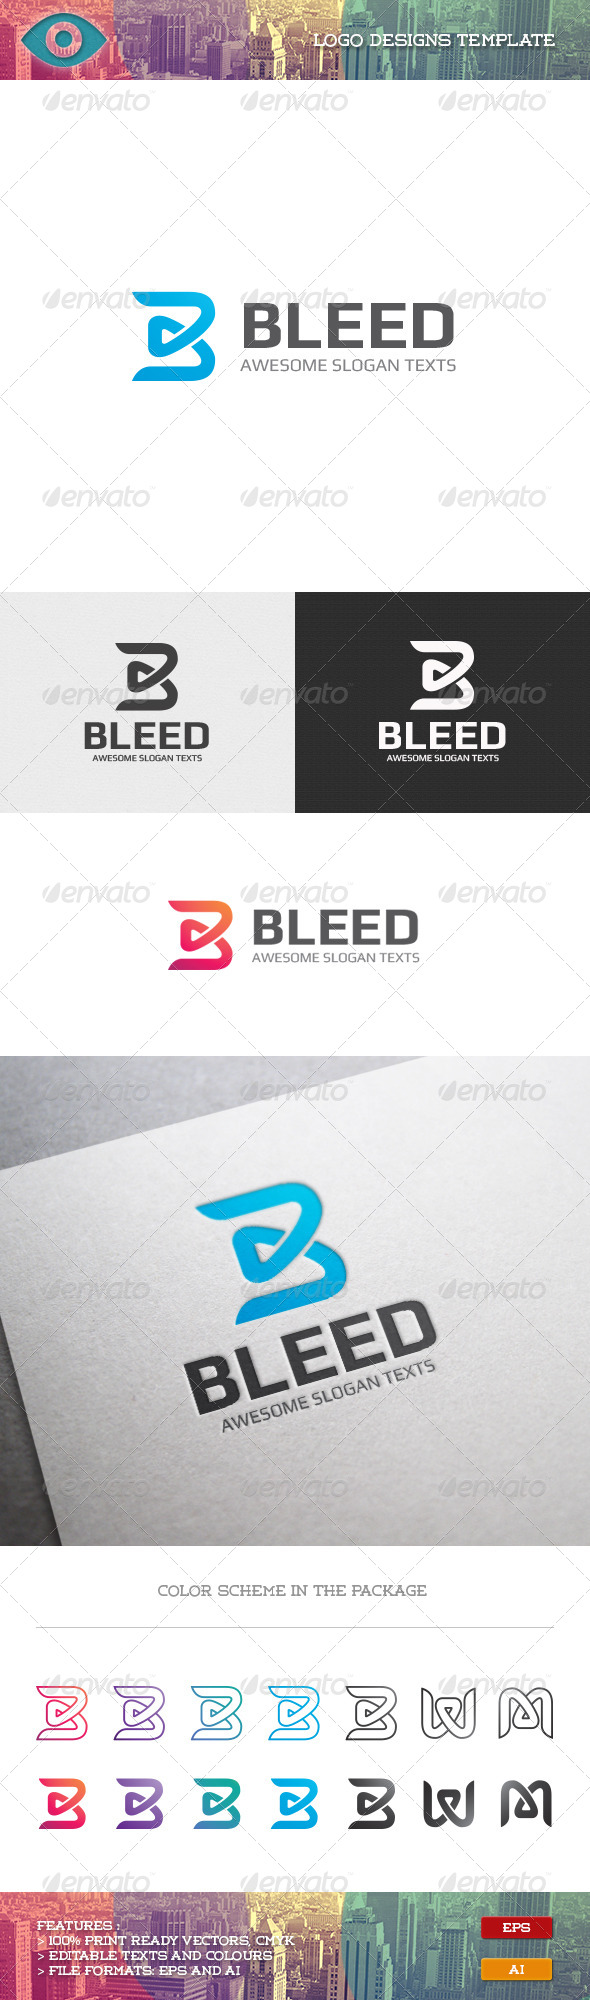 GraphicRiver Bleed 7056059